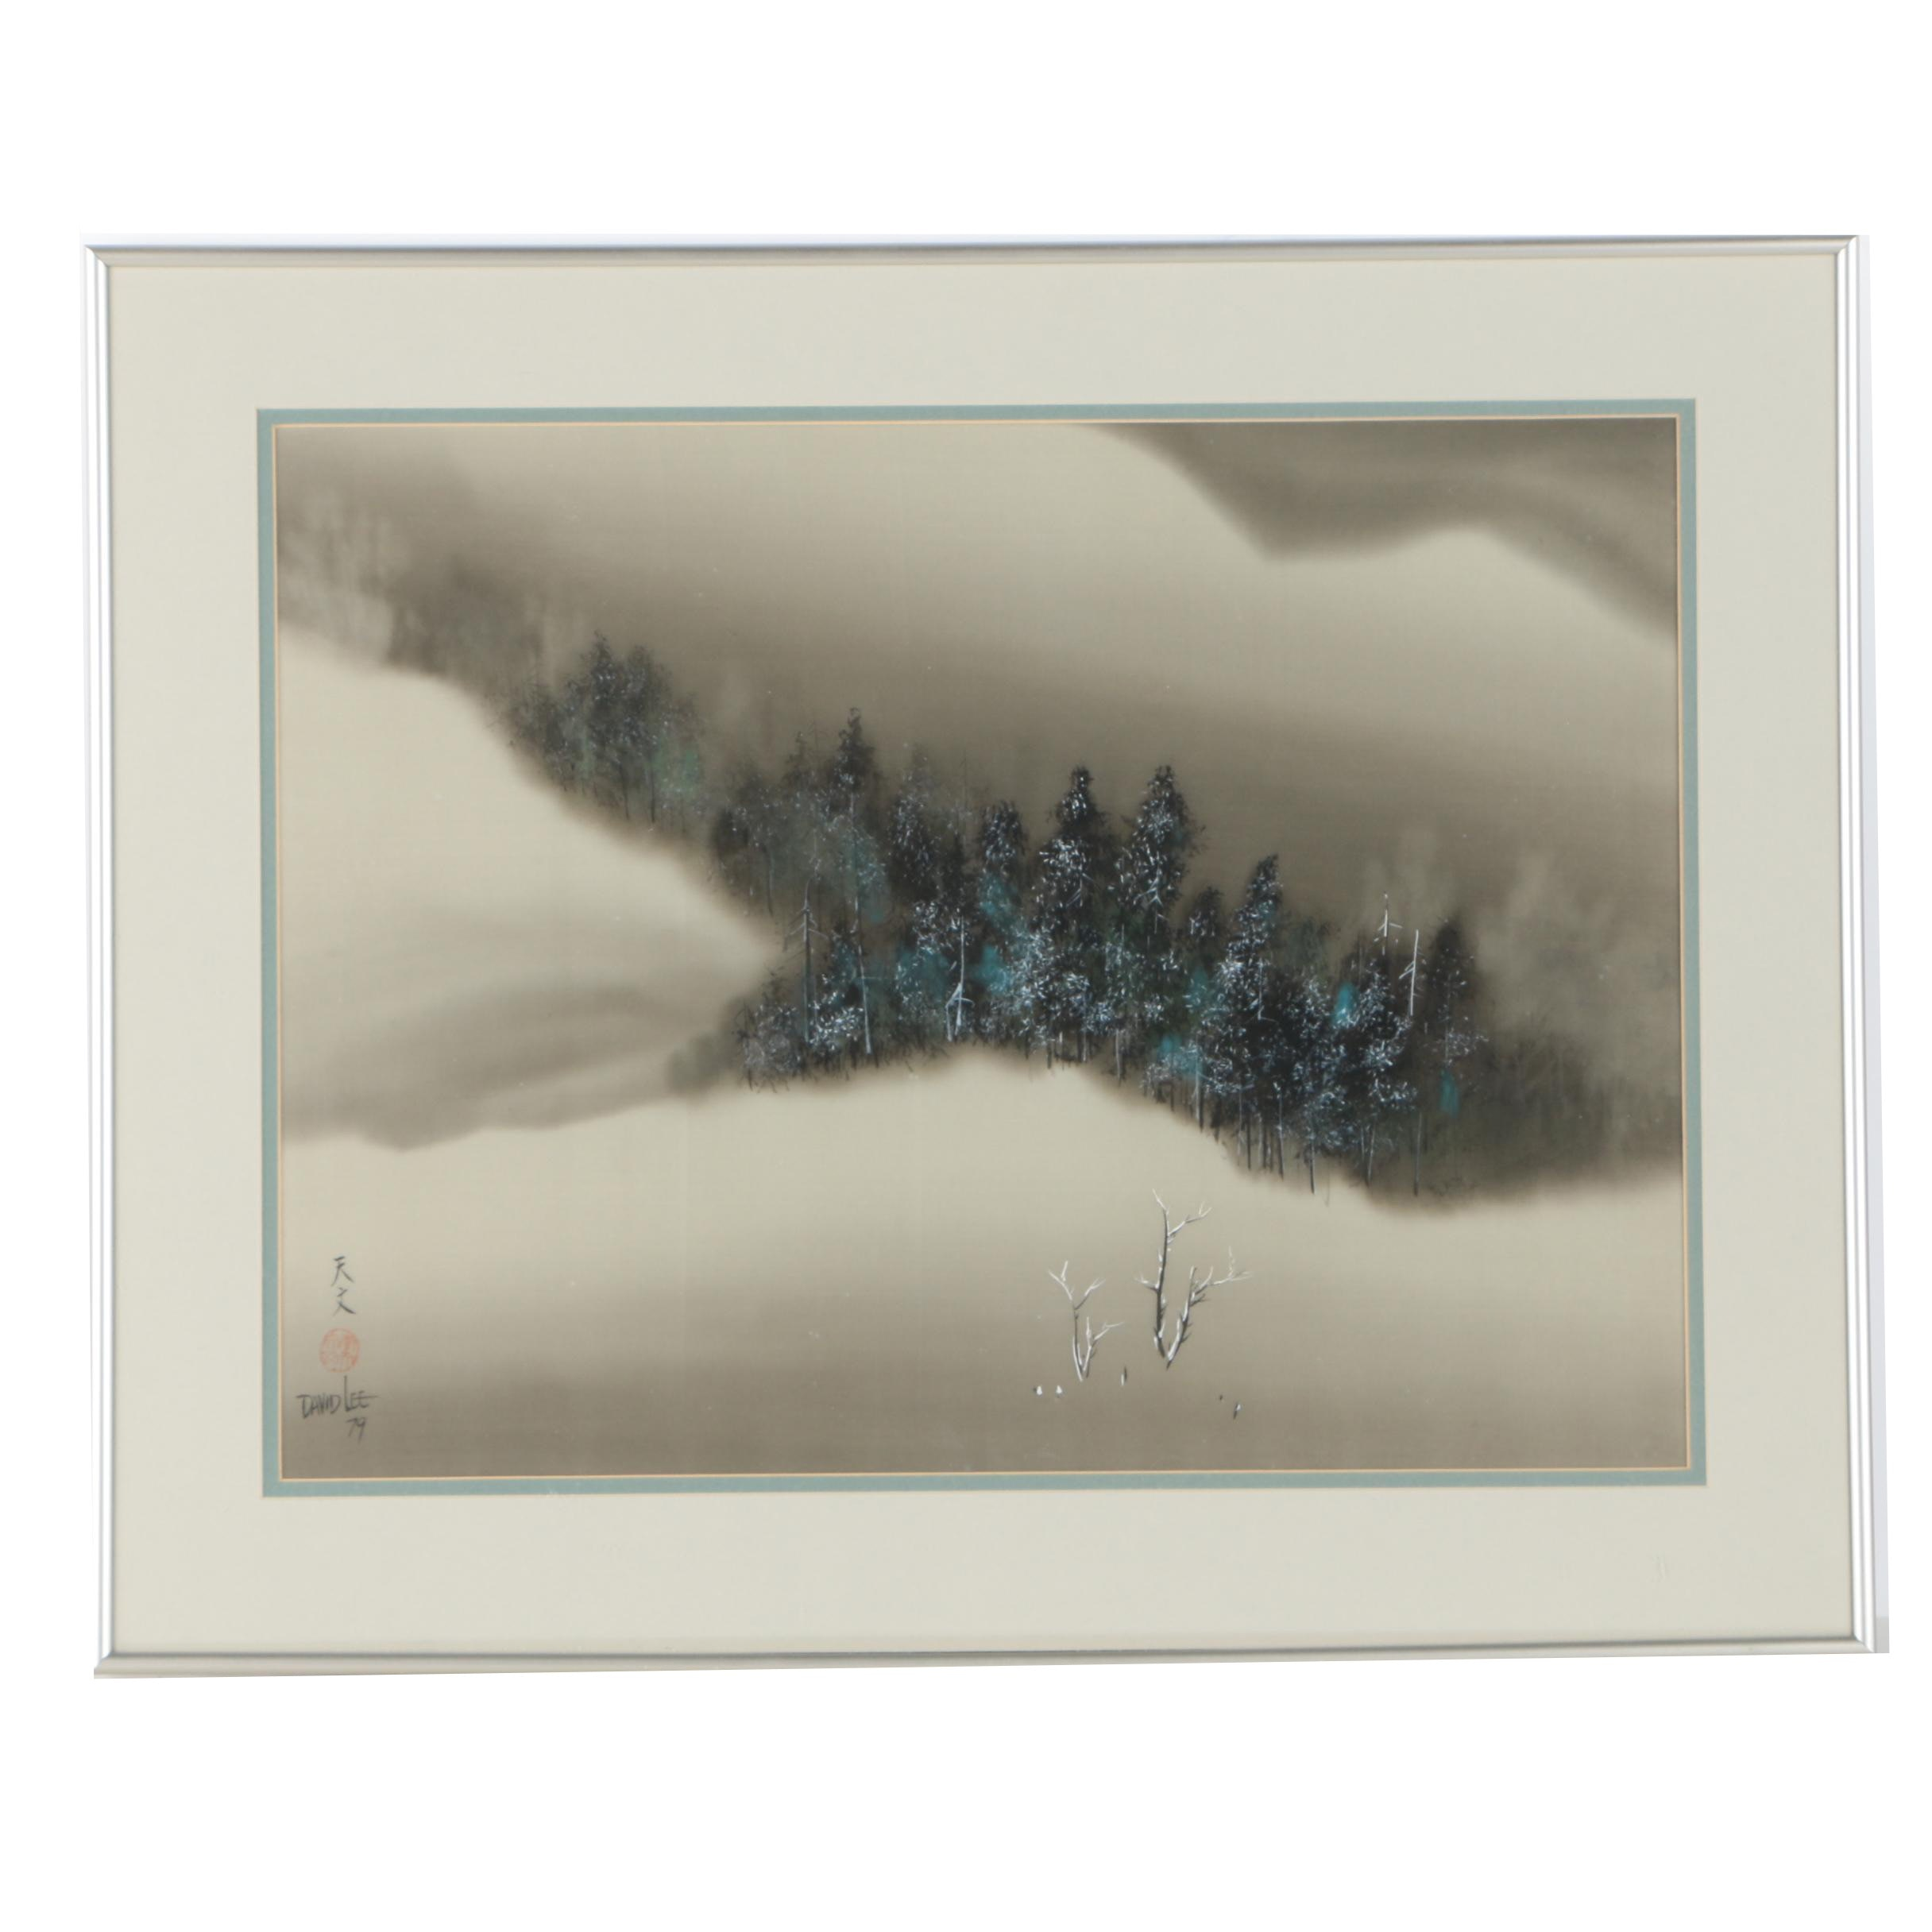 David Lee Gouache and Watercolor Landscape Painting on Silk